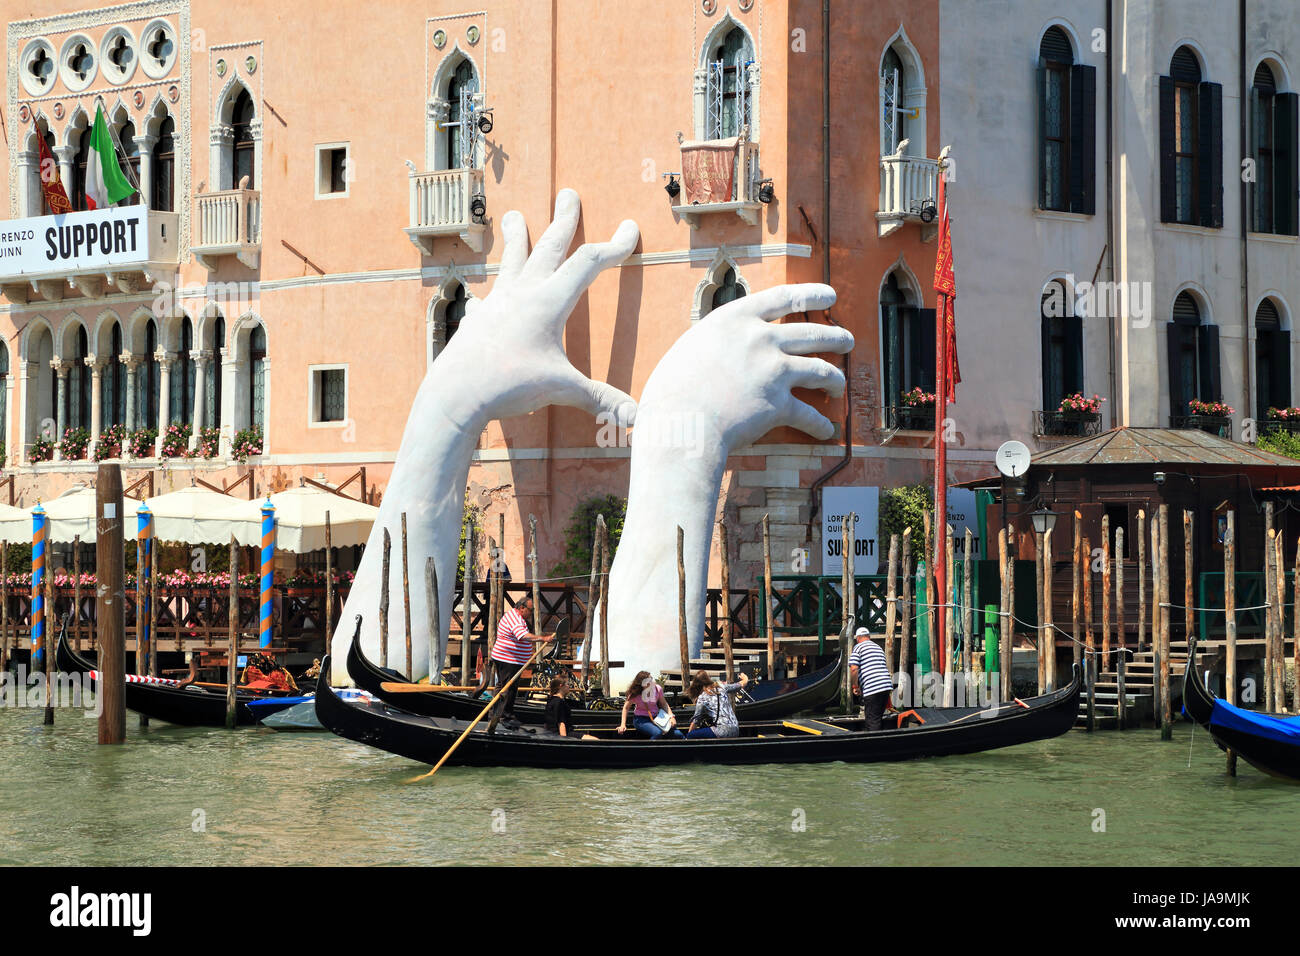 Art Biennale Venice 2017. Exhibition SUPPORT by Lorenzo Quinn. - Stock Image